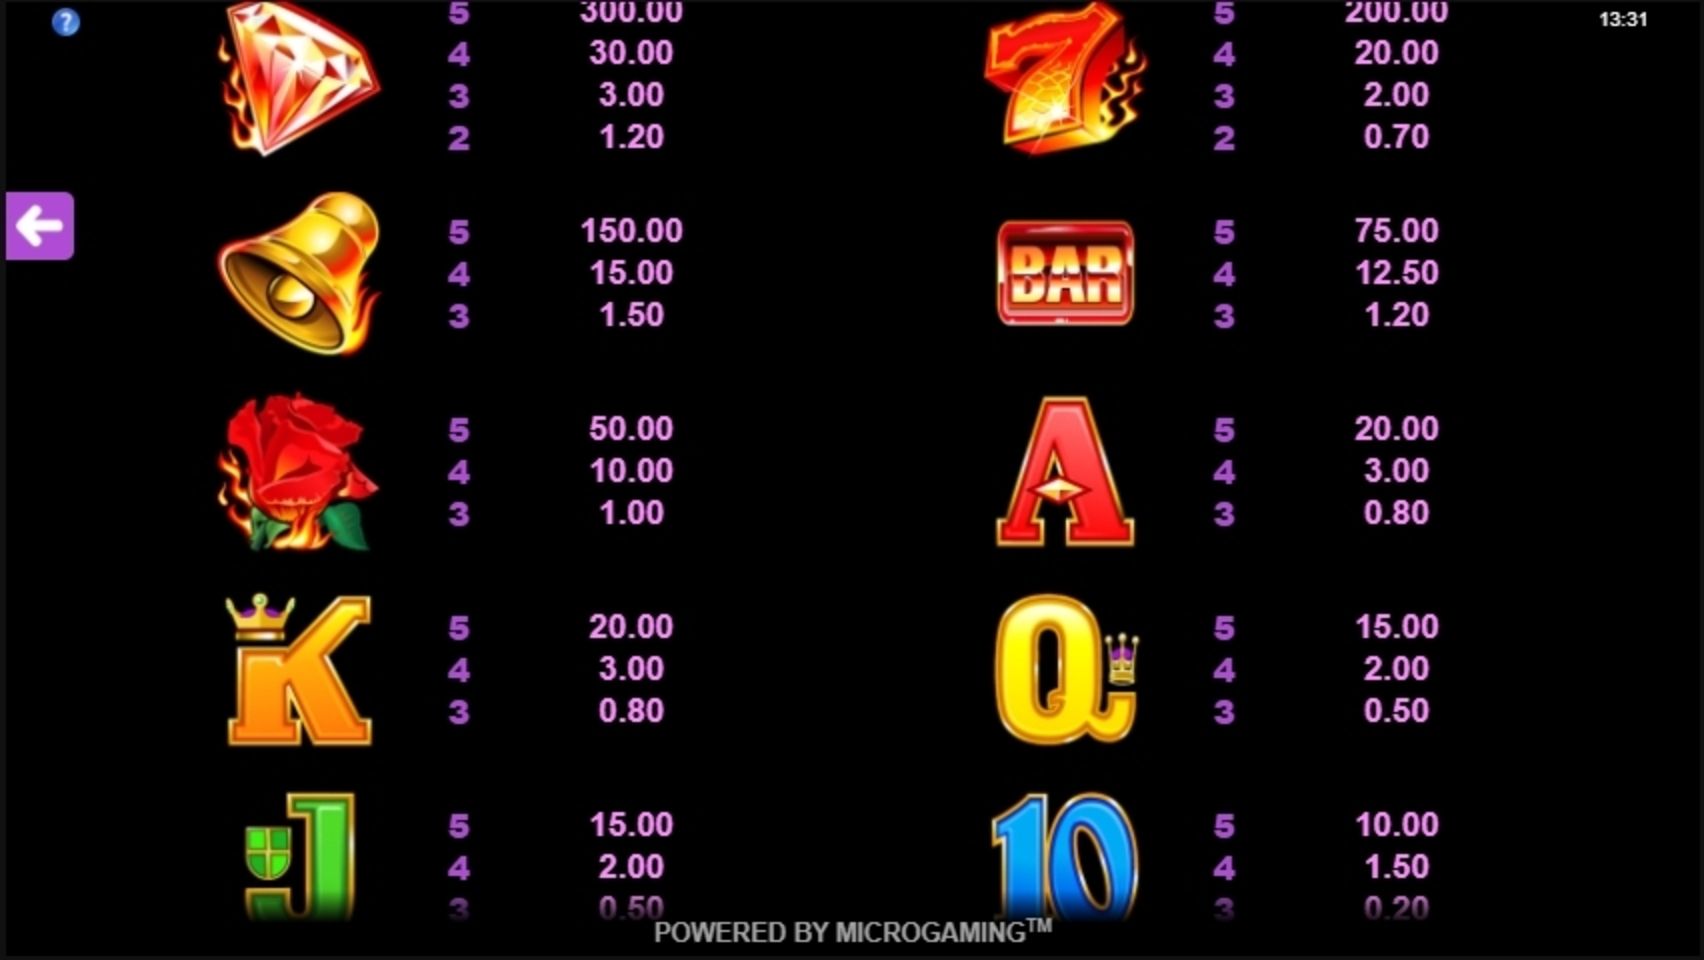 Info of Burning Desire Slot Game by Microgaming